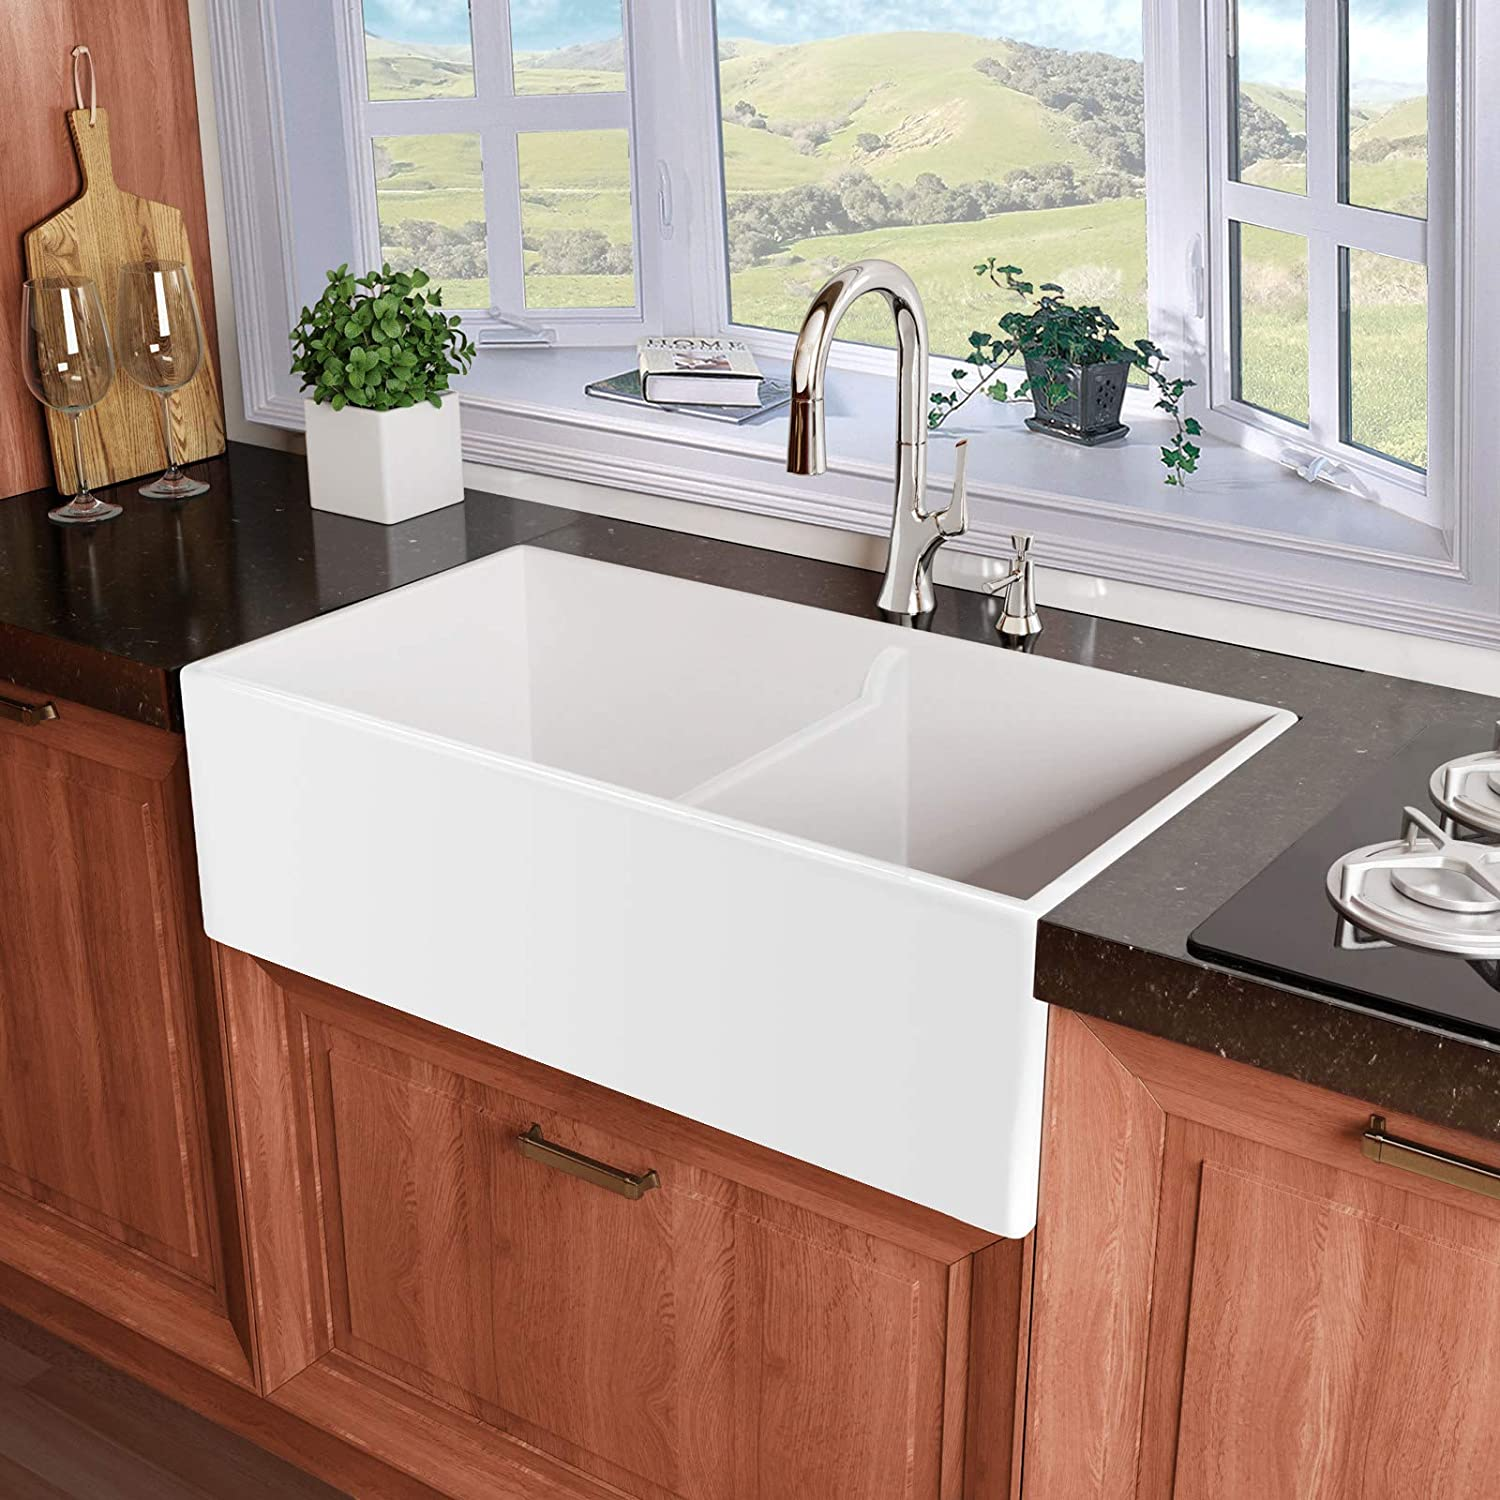 Miseno MNO3320BFC Inferno 33 Double Basin Farmhouse Fireclay Kitchen Sink with 60 40 Split